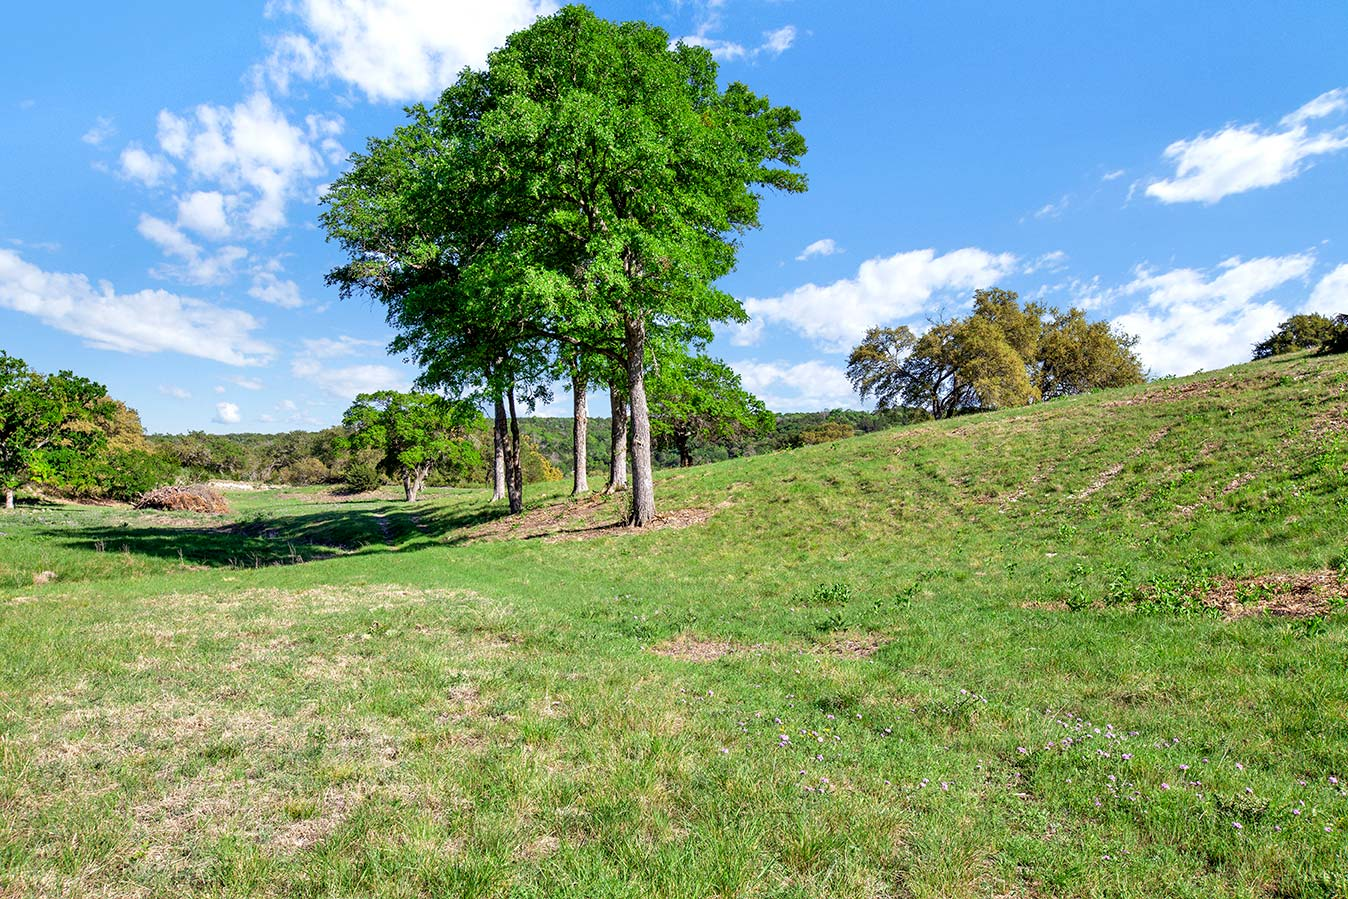 fredericksburg-realty-squaw-creek-ranch-real-estate-land-for-sale-home-house-historic-8.jpg